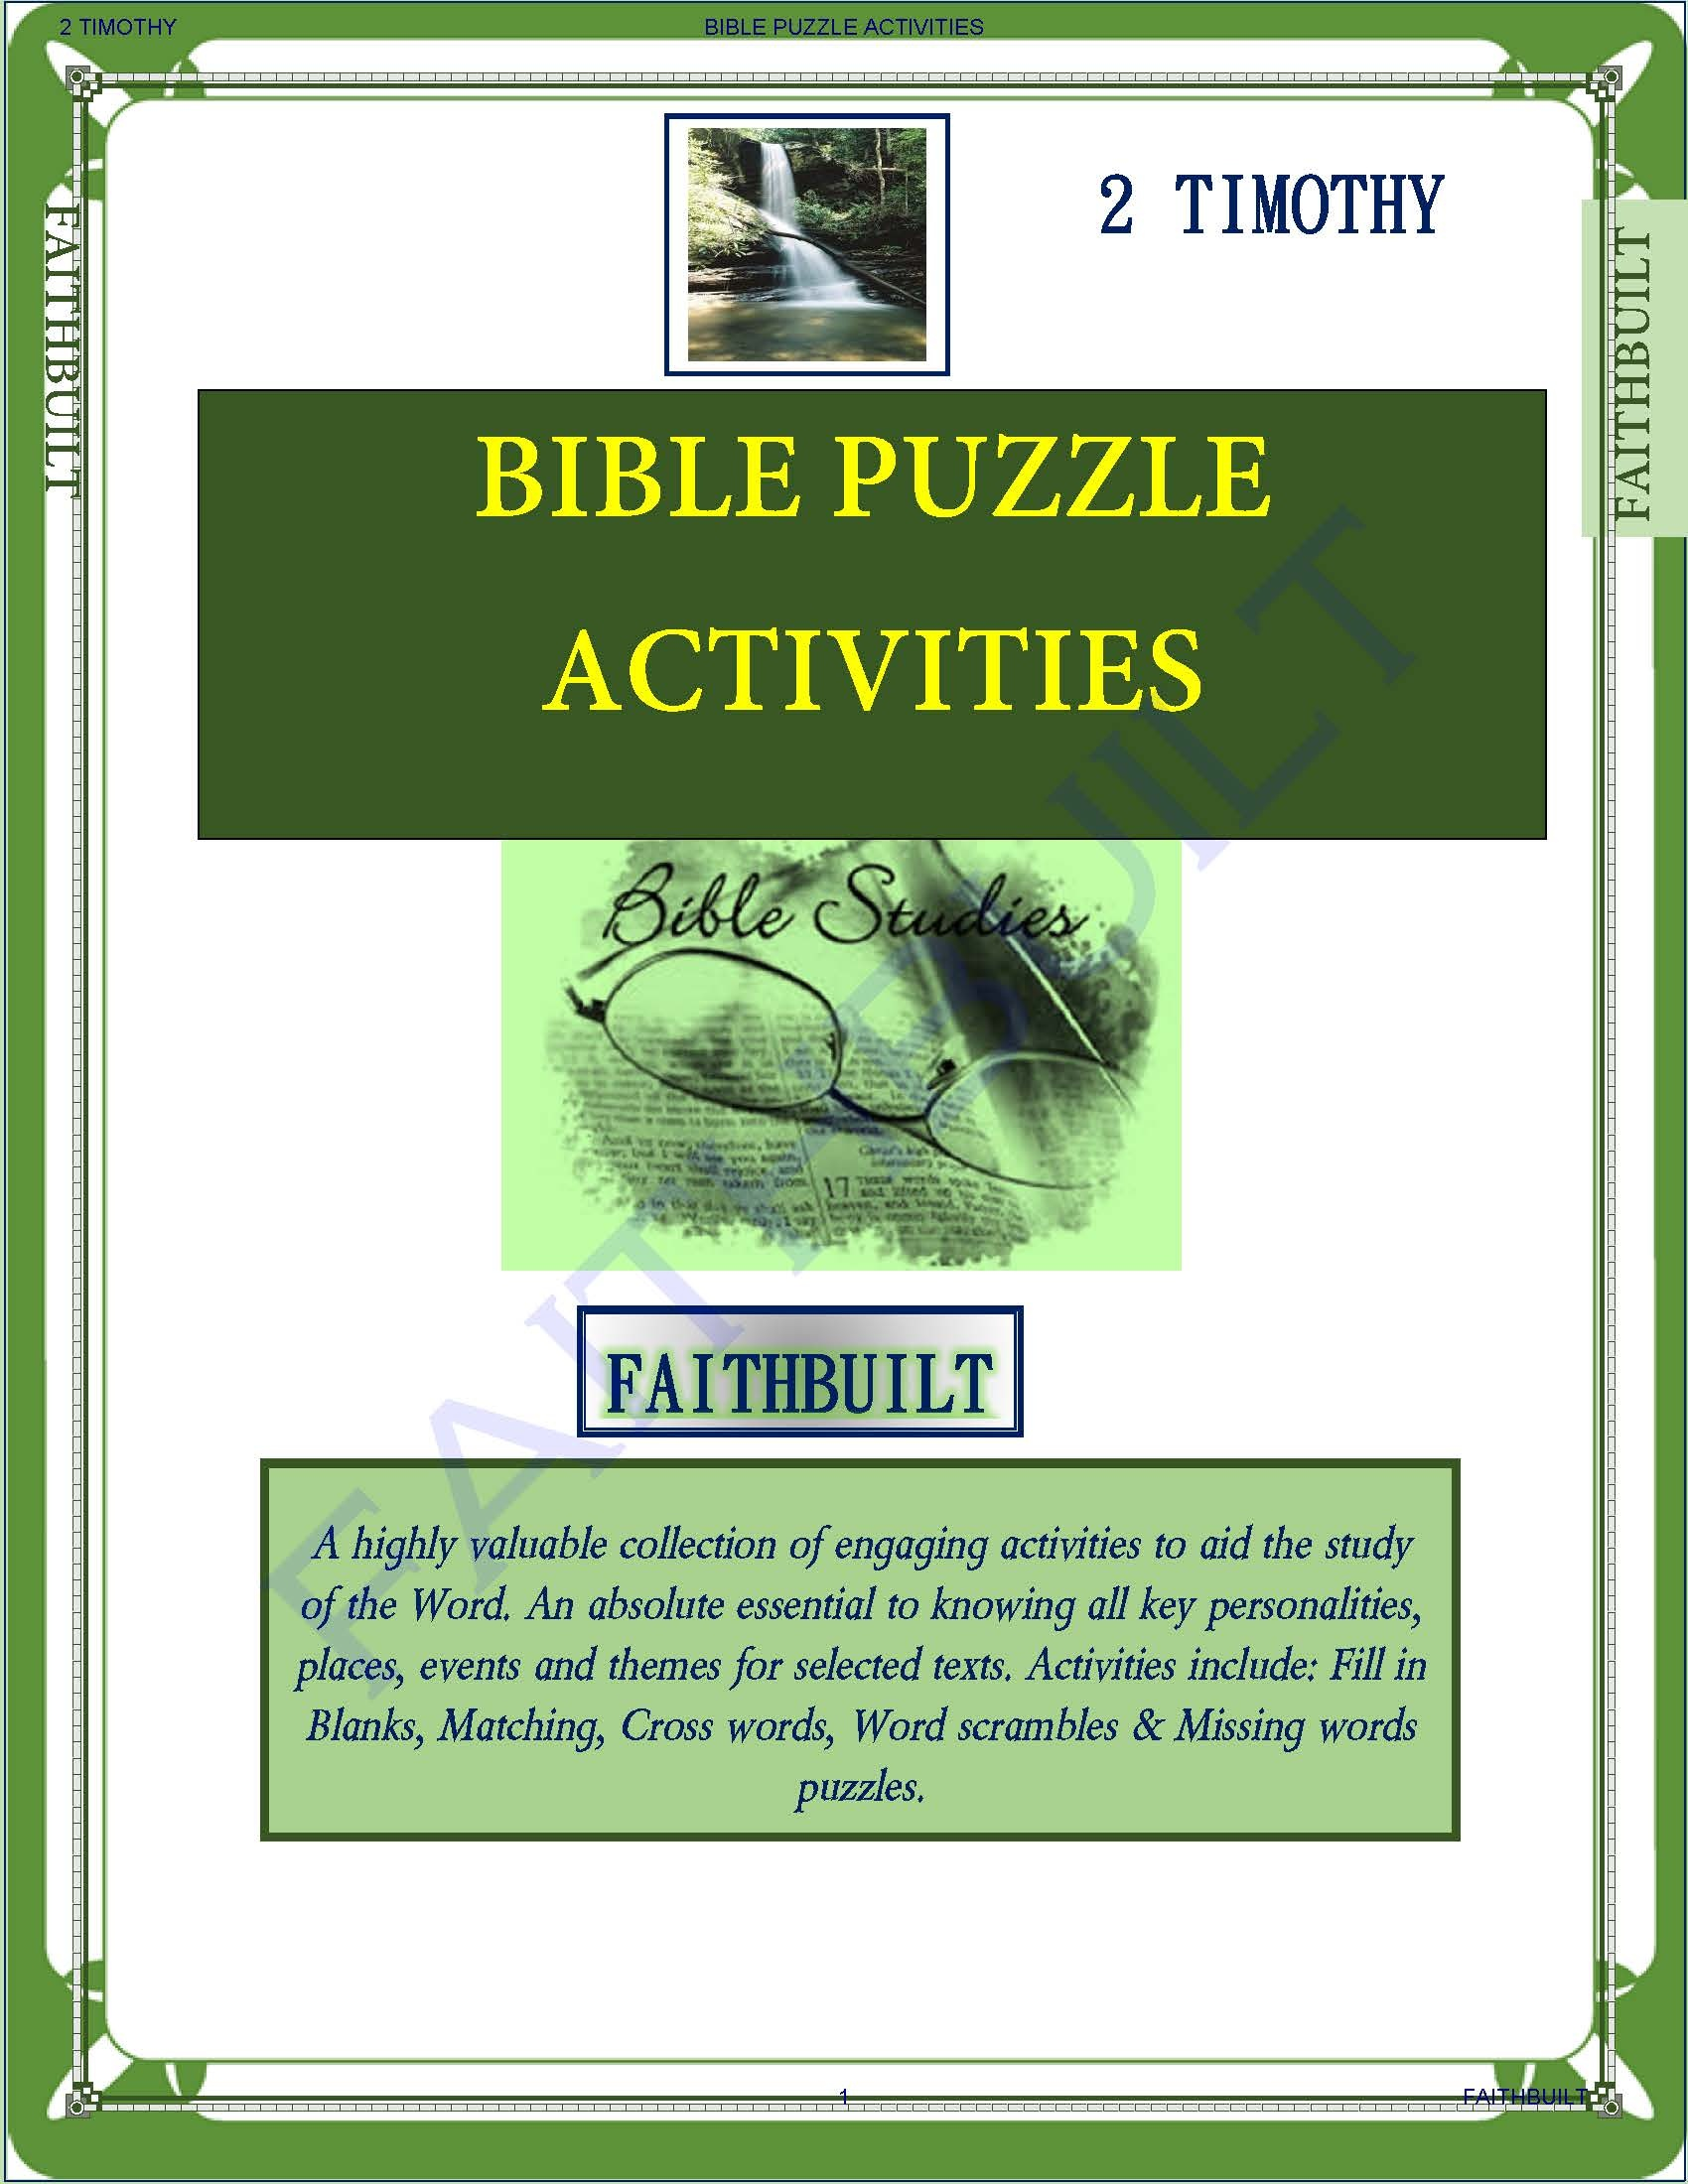 BIBLE ACTIVITIES GUIDE - 2TIMOTHY